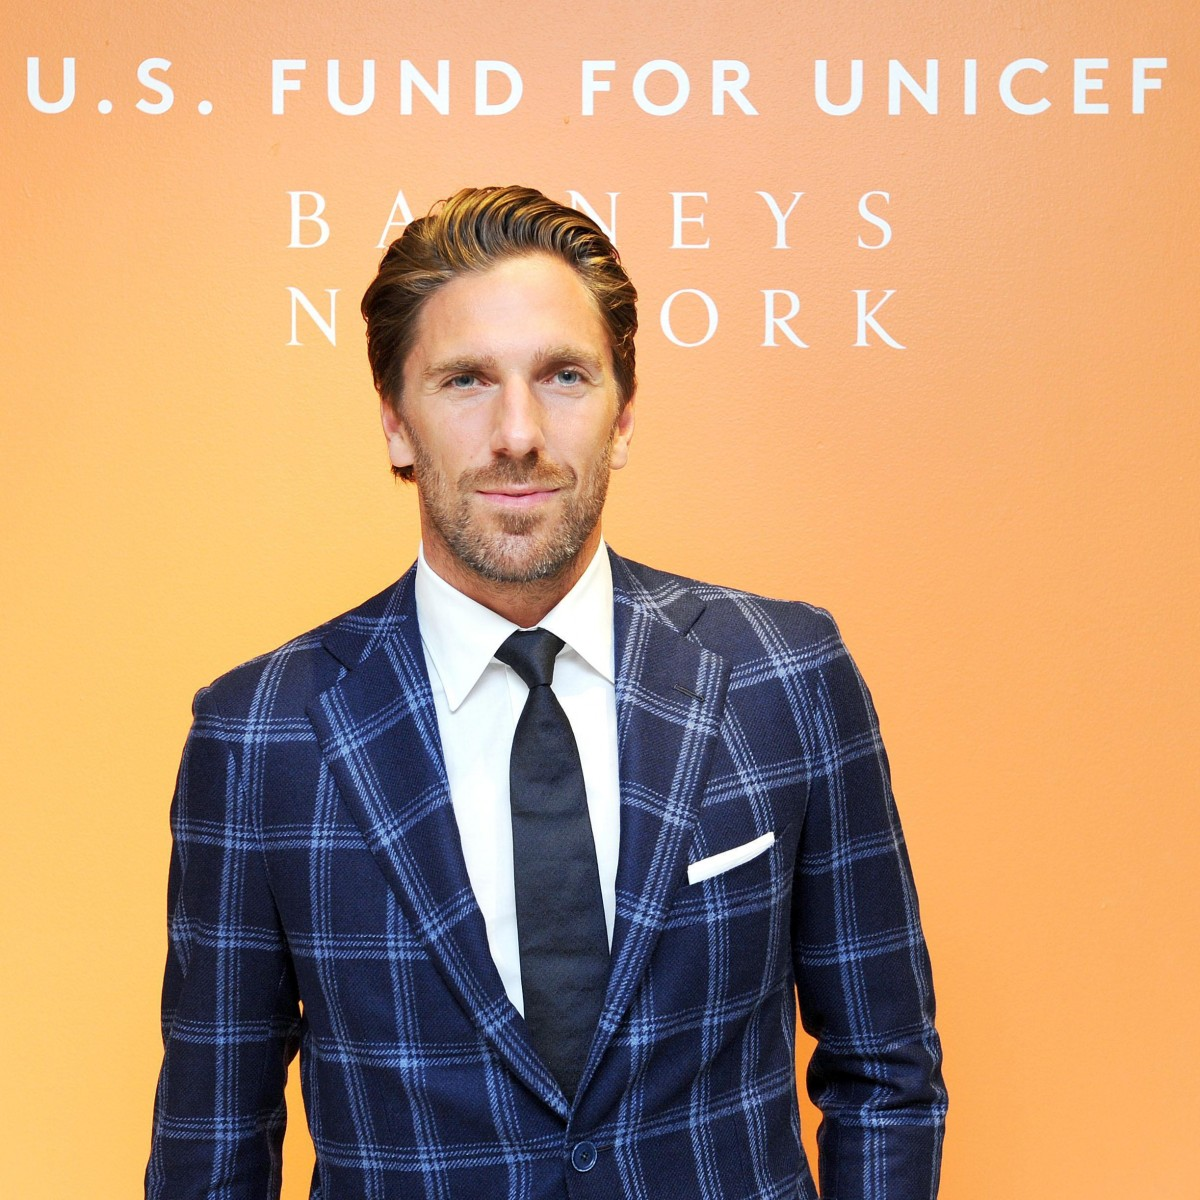 BARNEYS NEW YORK, HENRIK LUNDQVIST, MARK LEE & DAVID SABLE Host MAN UP to Celebrate The Newly Renovated Mens 6th Floor in Support OF of the U.S. FUND FOR UNICEF